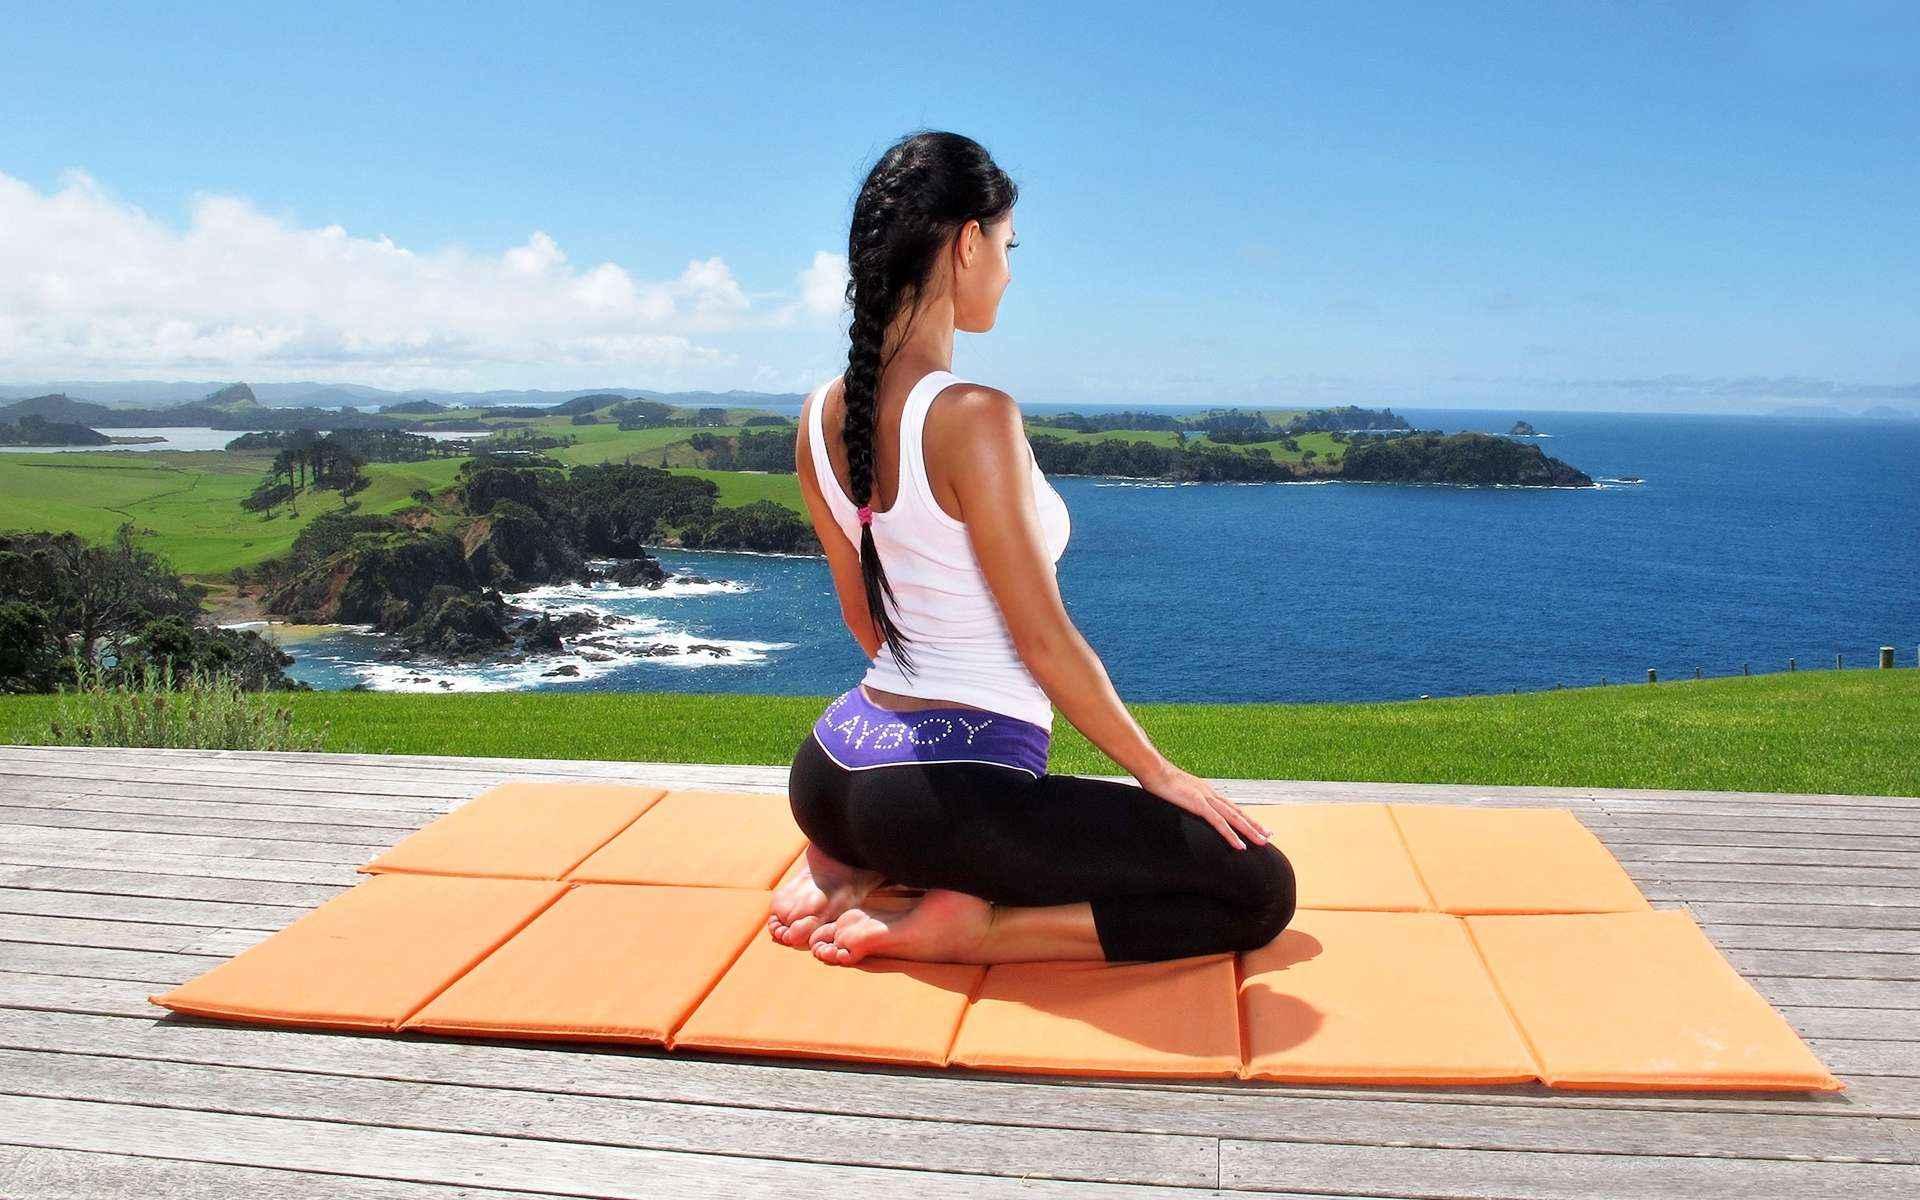 So You Want to Date a Yoga Girl? Read This Before You